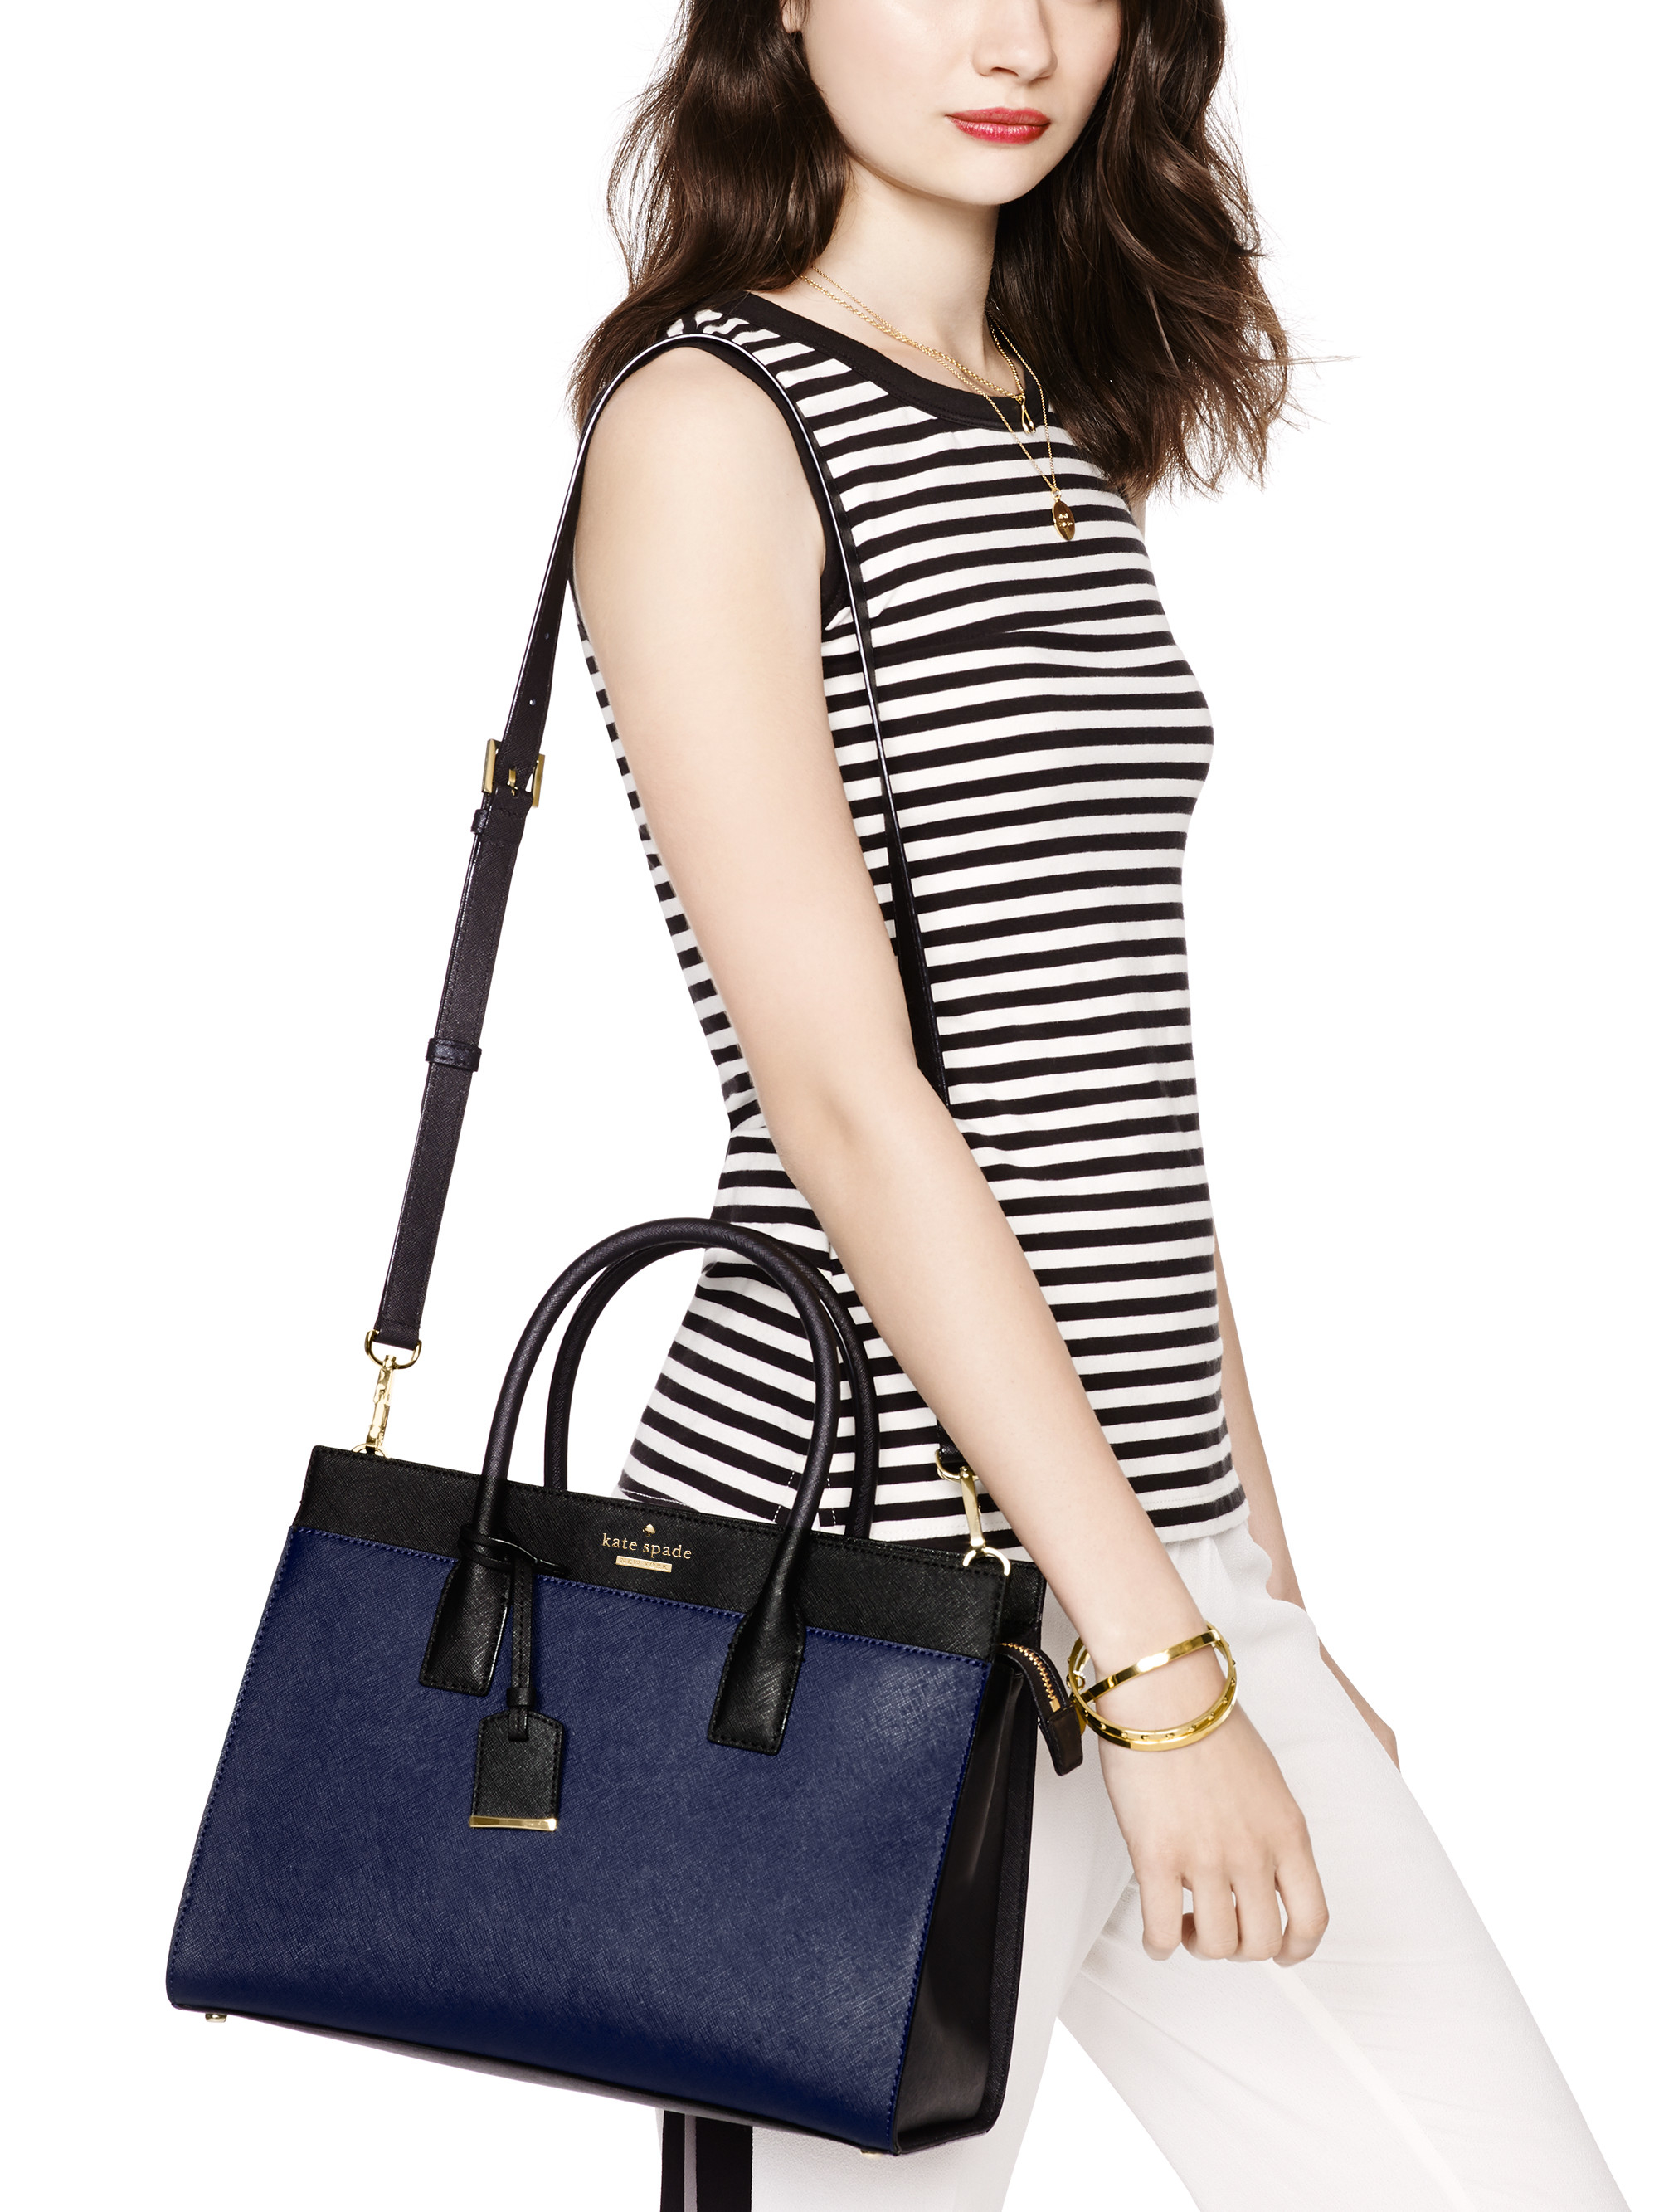 Kate Spade New York Cameron Street Candace Satchel In Blue